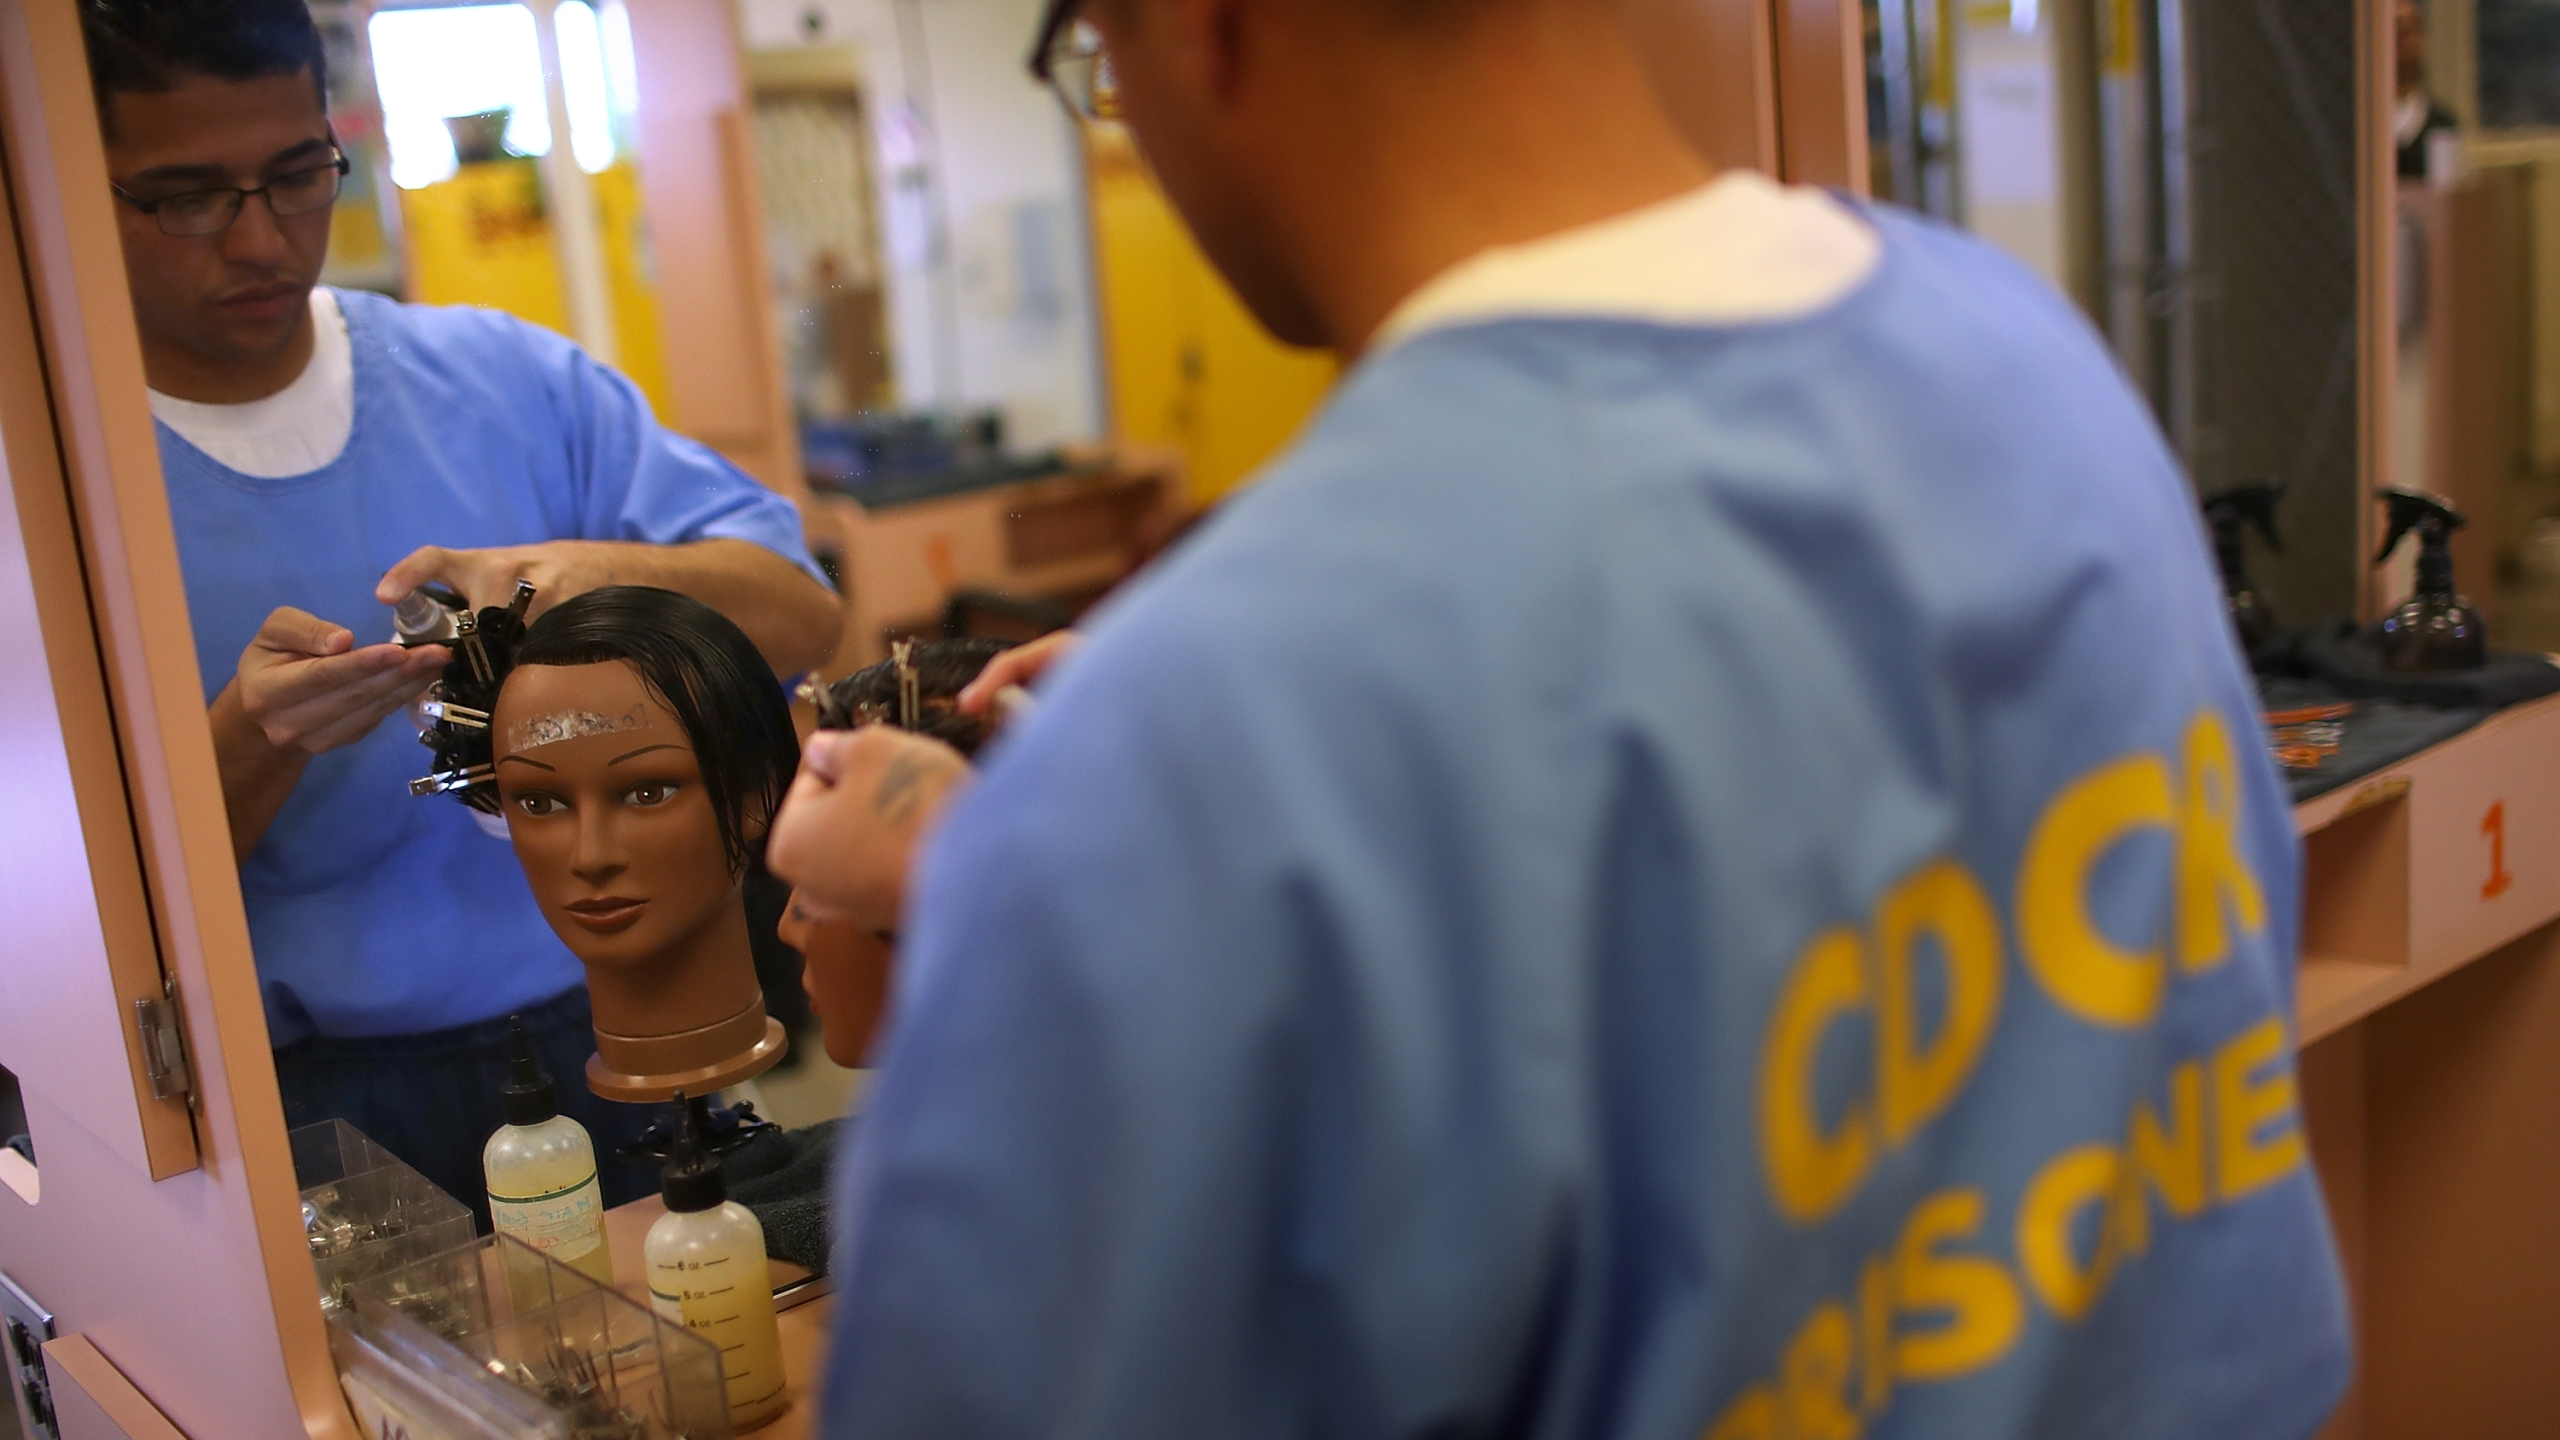 Inmate Cornelio Huerta practices grooming hair on a mannequin during a cosmetology class at Valley State Prison in Chowchilla on March 2, 2017. (Credit: Justin Sullivan / Getty Images)